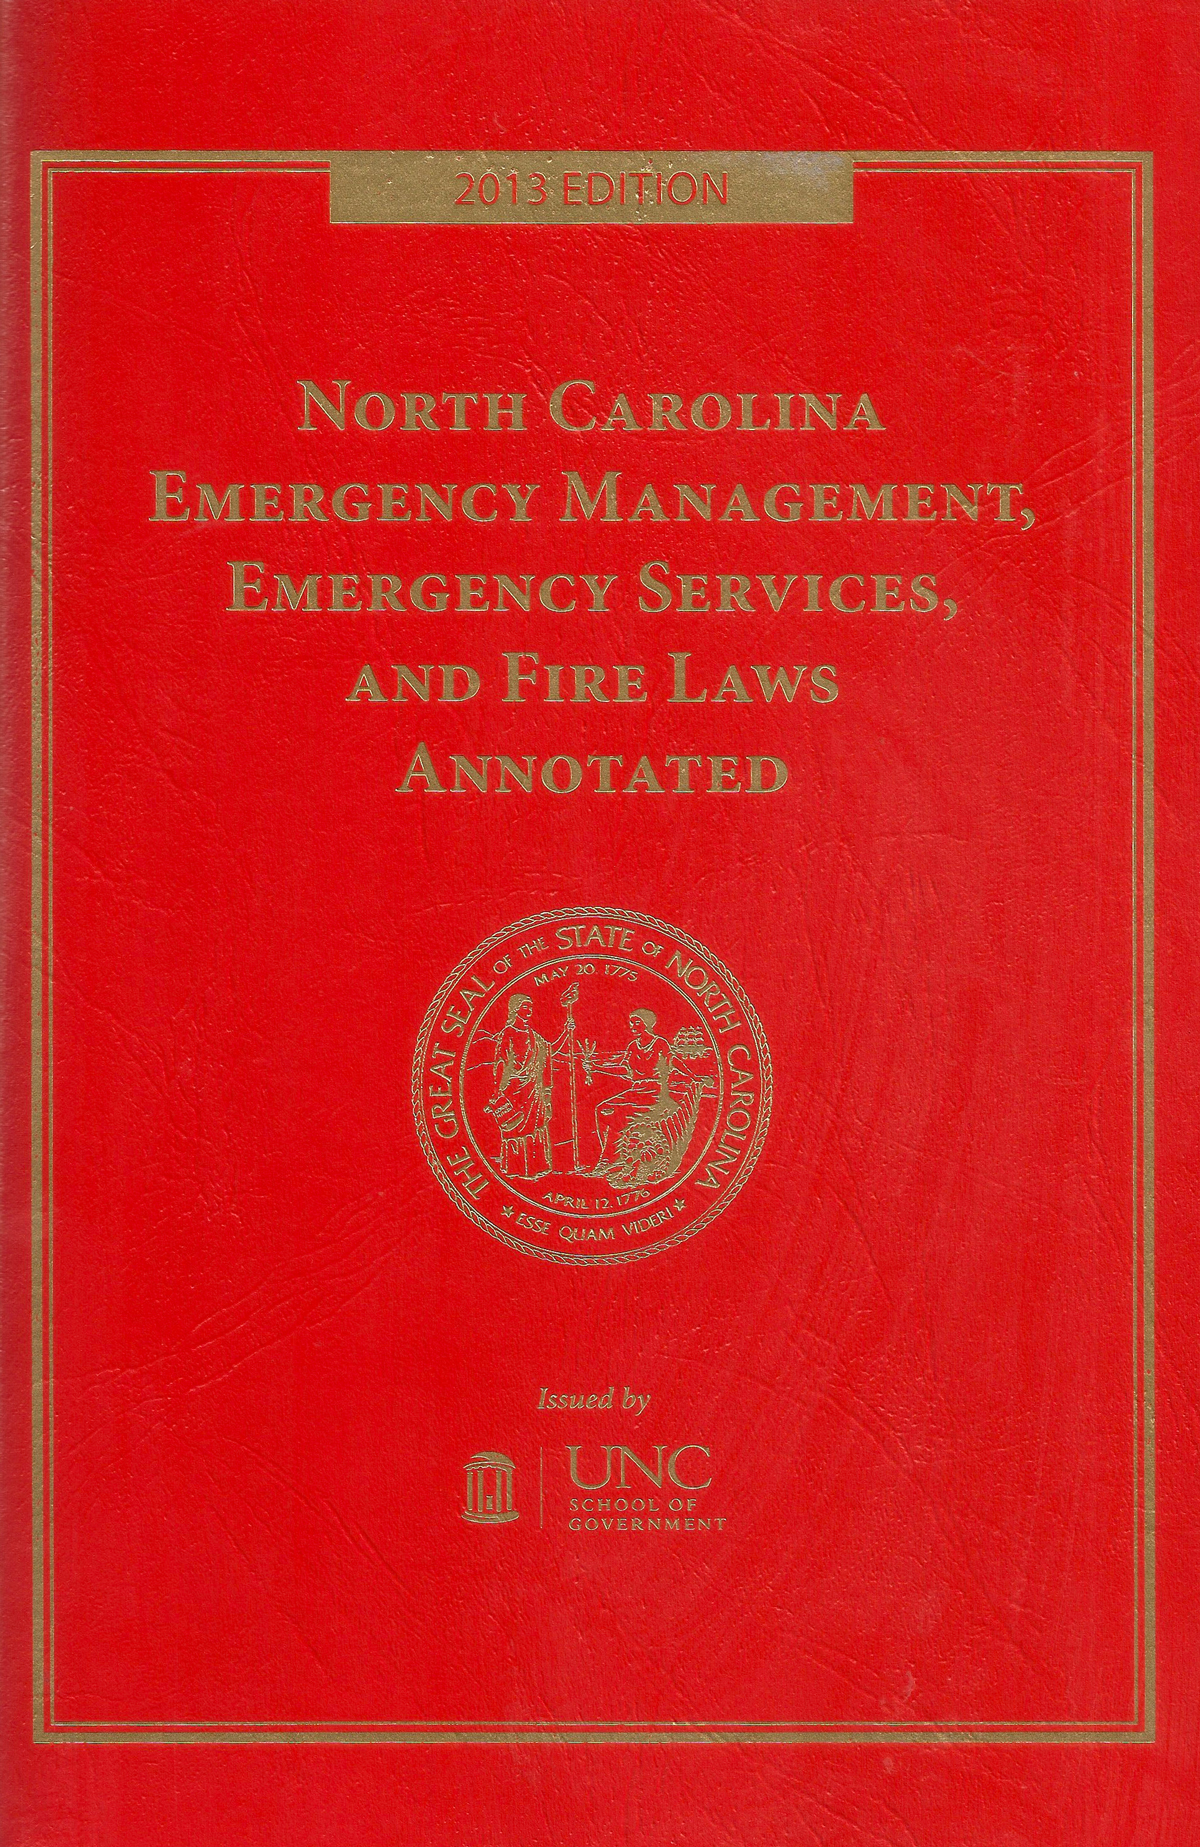 Cover image for North Carolina Emergency Management, Emergency Services, and Fire Laws Annotated, 2013 (LexisNexis Book + eBook)